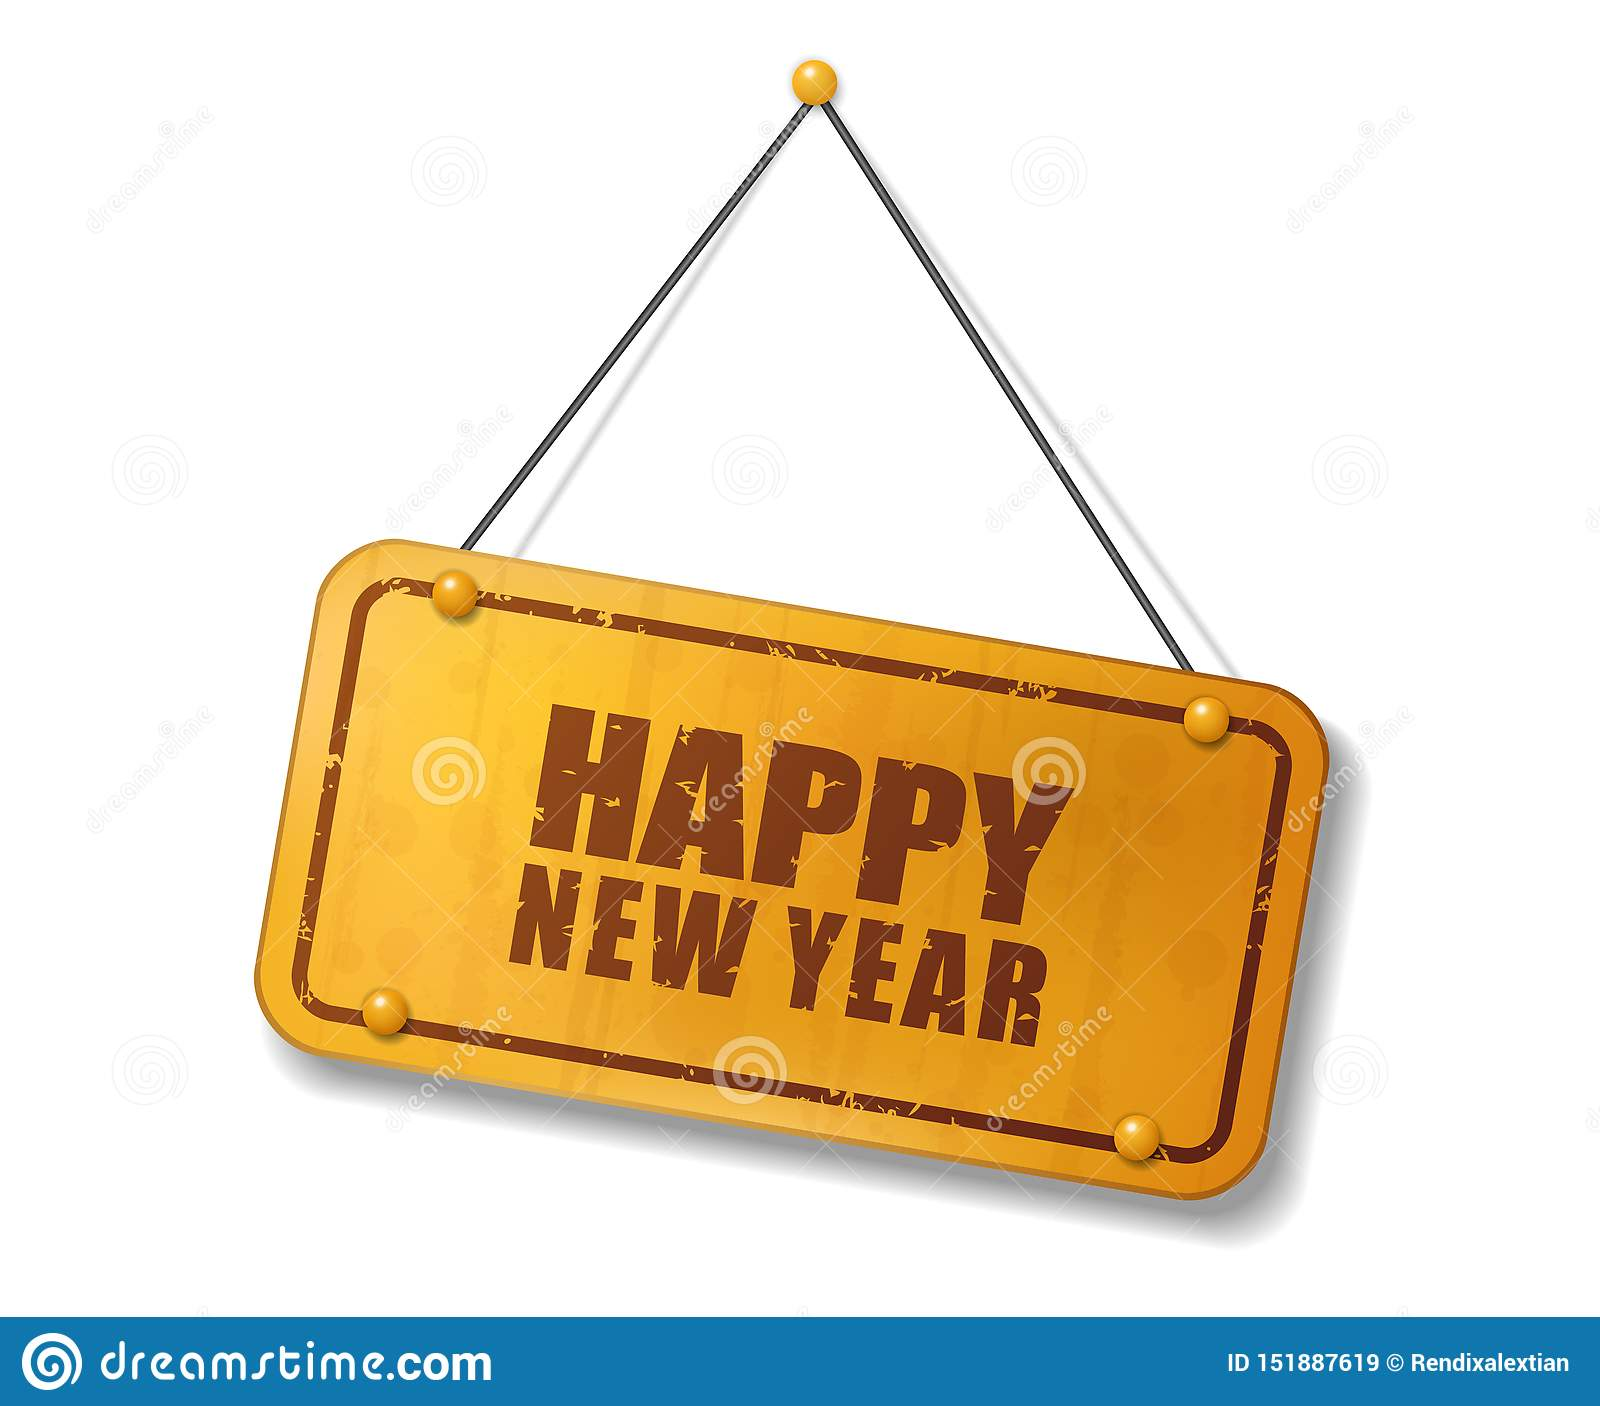 Vintage Old Gold Sign With Happy New Year Text Stock Vector